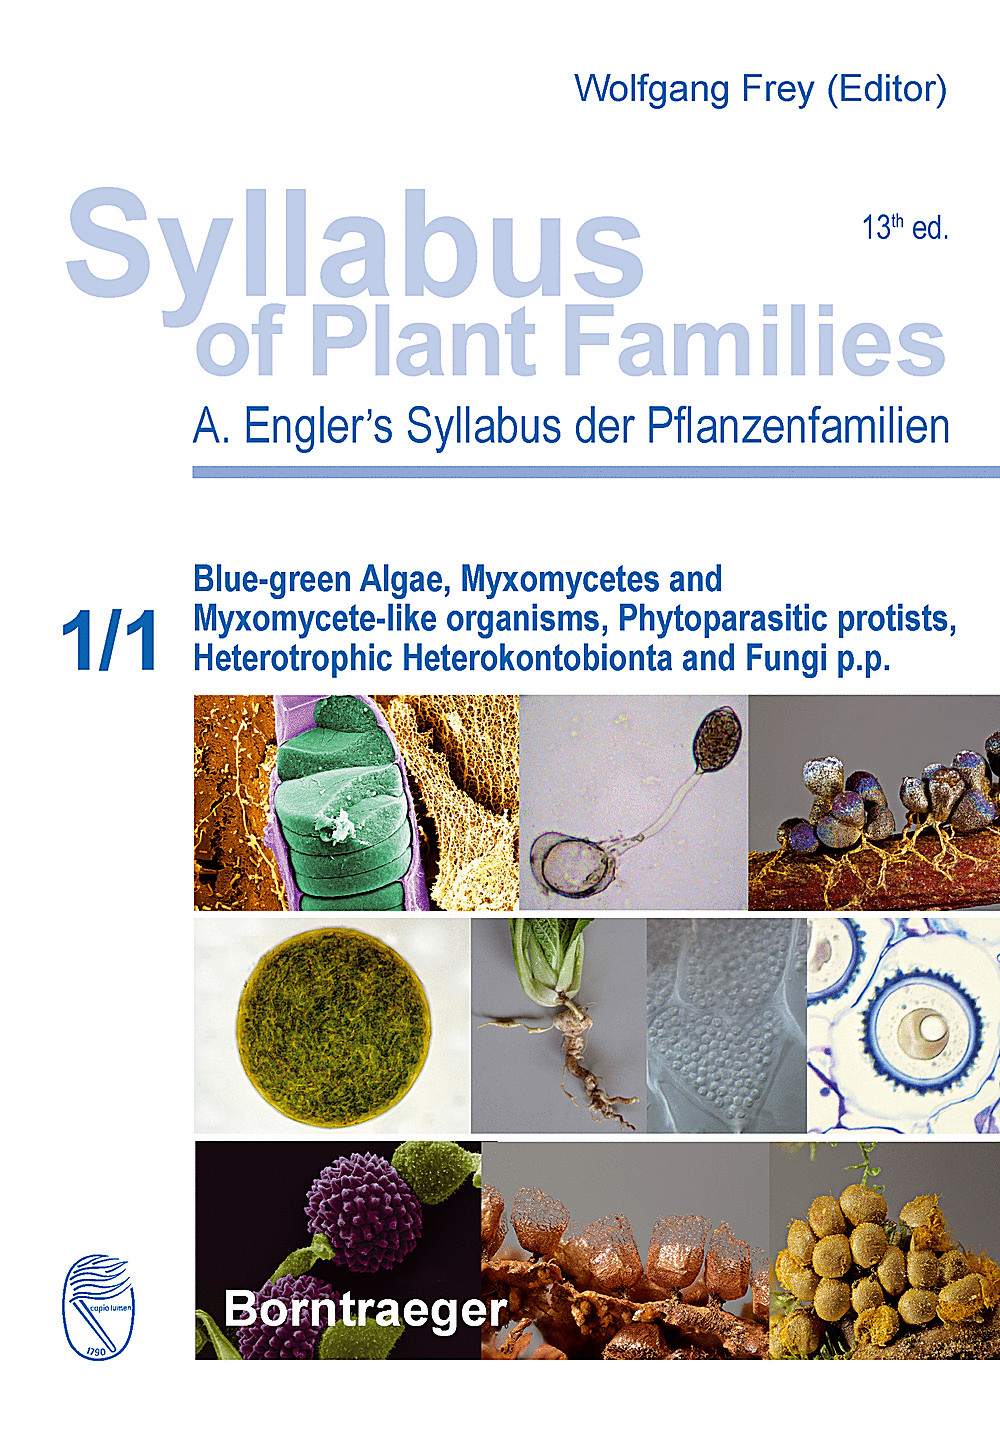 Syllabus of plant families. A. Engler's Syllabus der Pflanzenfamilien. 13th edition. Part 1/1 Blue-green Algae, Myxomycets and myxomycete-like organisms, phytoparasitic protists, Heterotrophic Heterokontobionta and Fungi